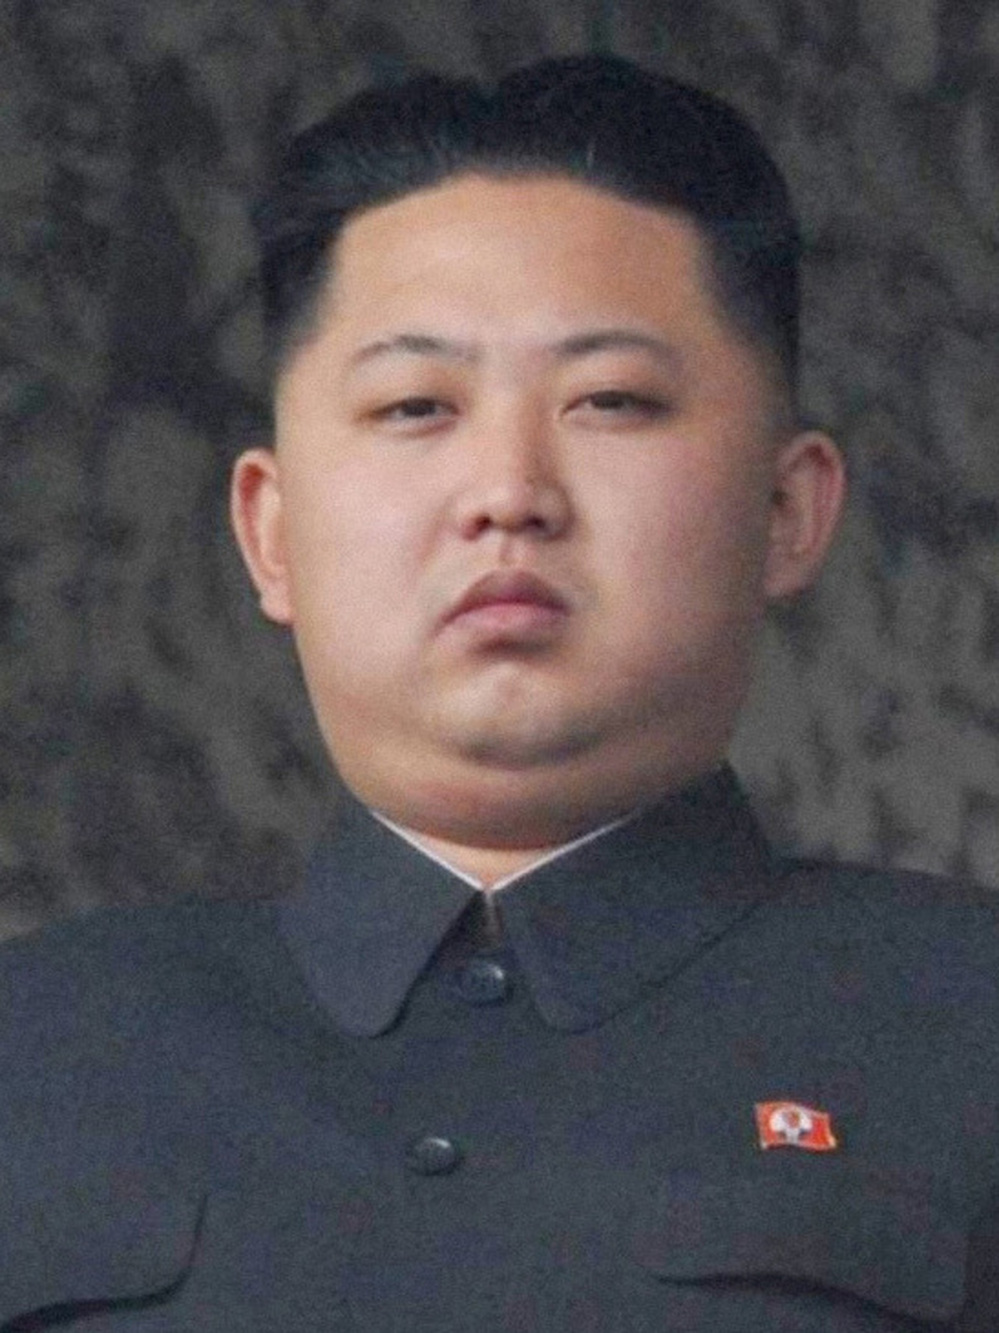 kimjongun_vert-17656b658f19f87081f7480c13e6decc827decdc-s51 - Kim Jong Un Kills Uncle in Move to End Doubts He's in Charge - Asia | Middle East